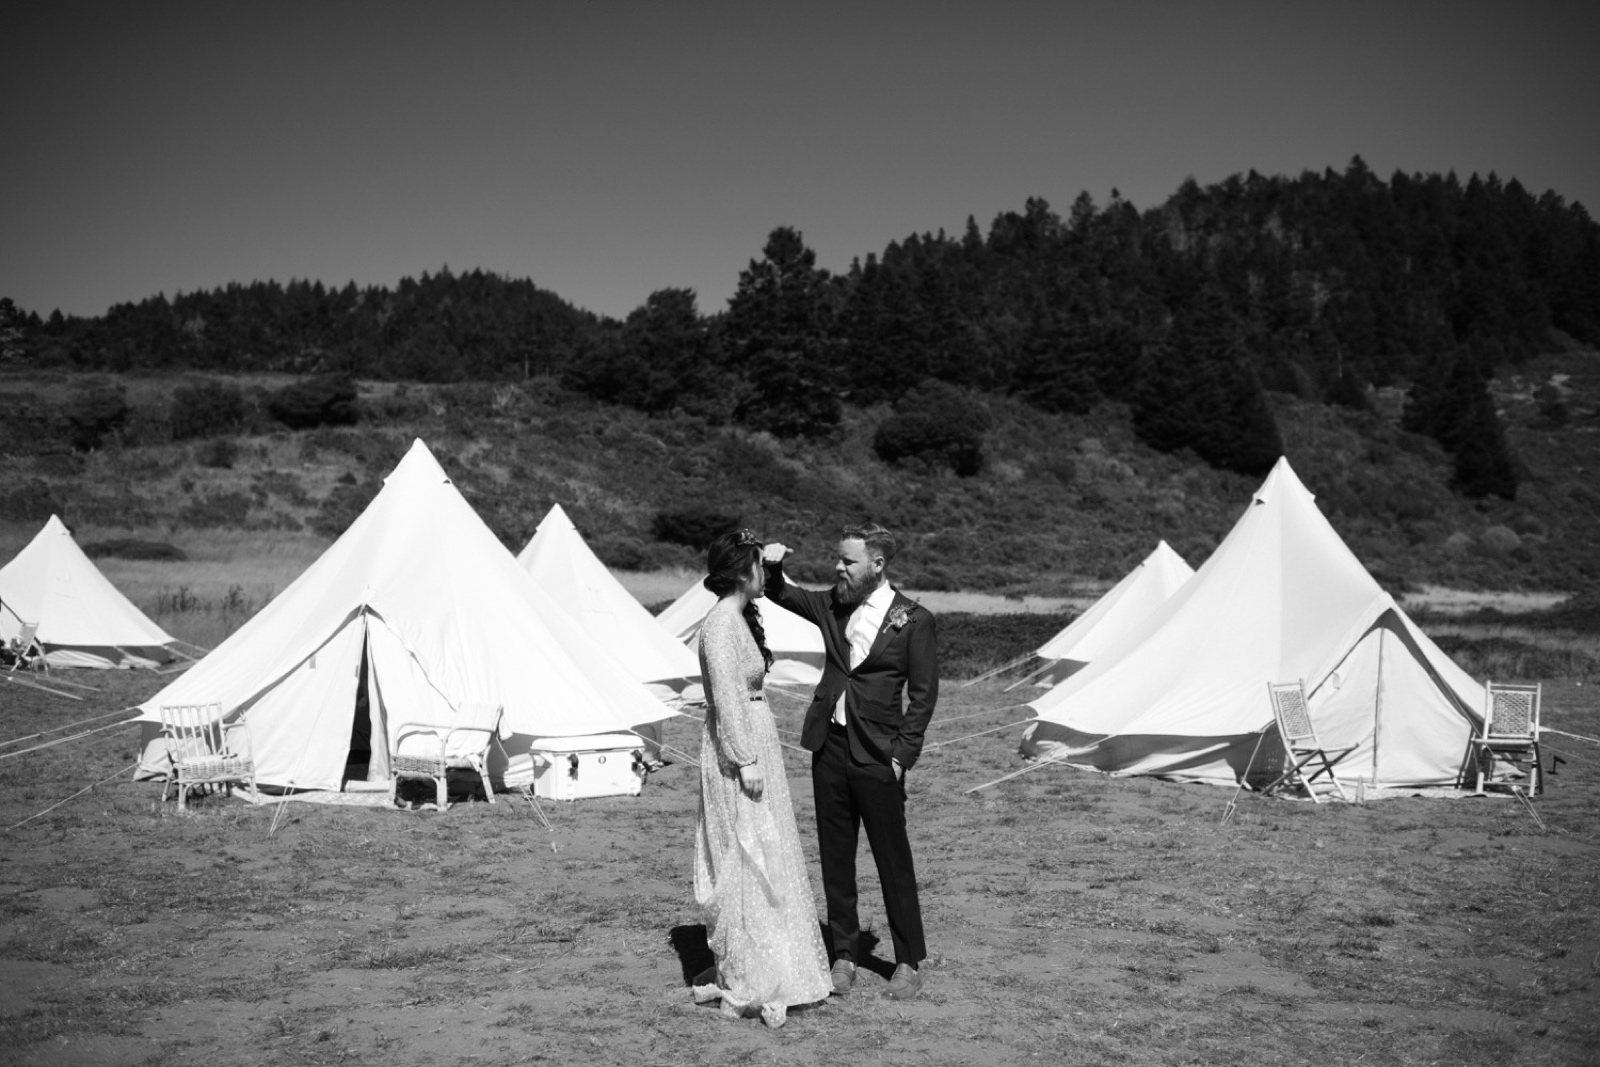 Mendocino_Wedding_Cuffeys_Cove049.JPG